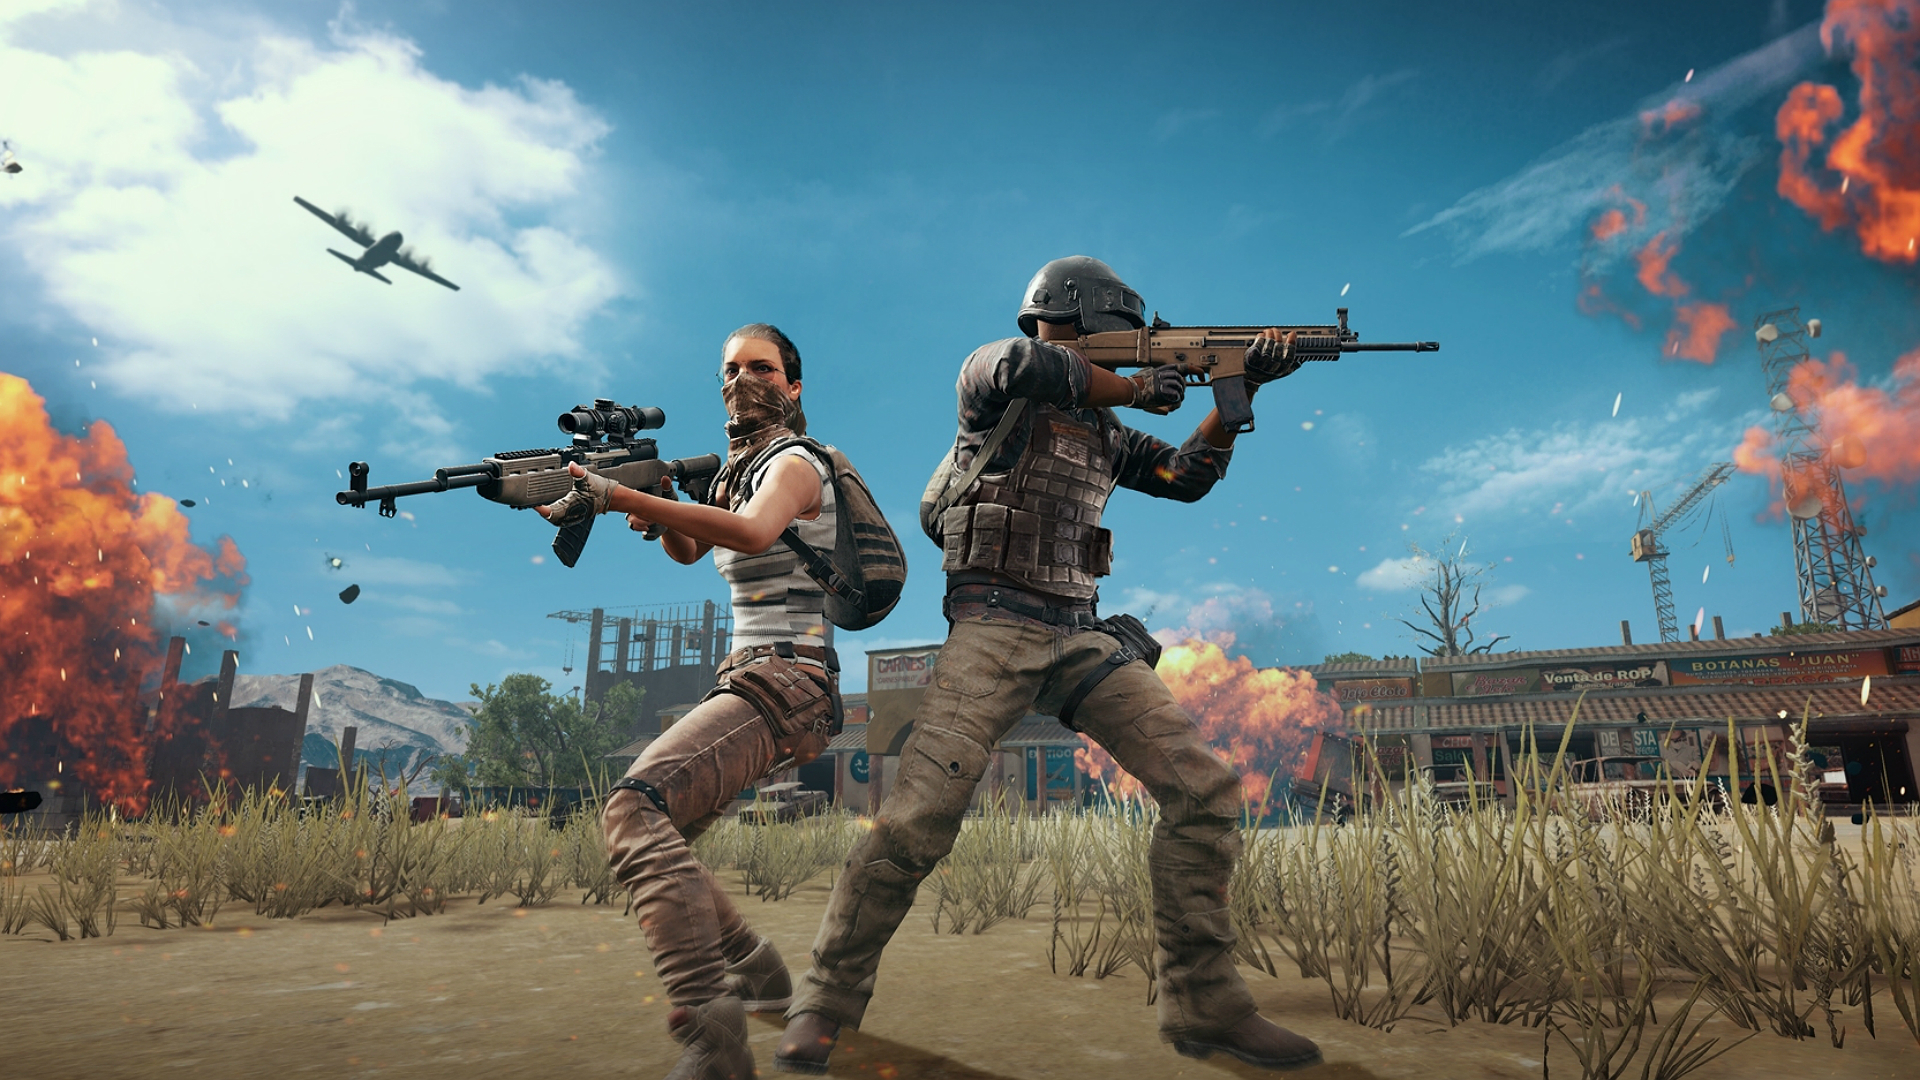 What You Can Learn From The Team Behind Pubg: PUBG Weapons Guide: The Best Guns For Getting A Chicken